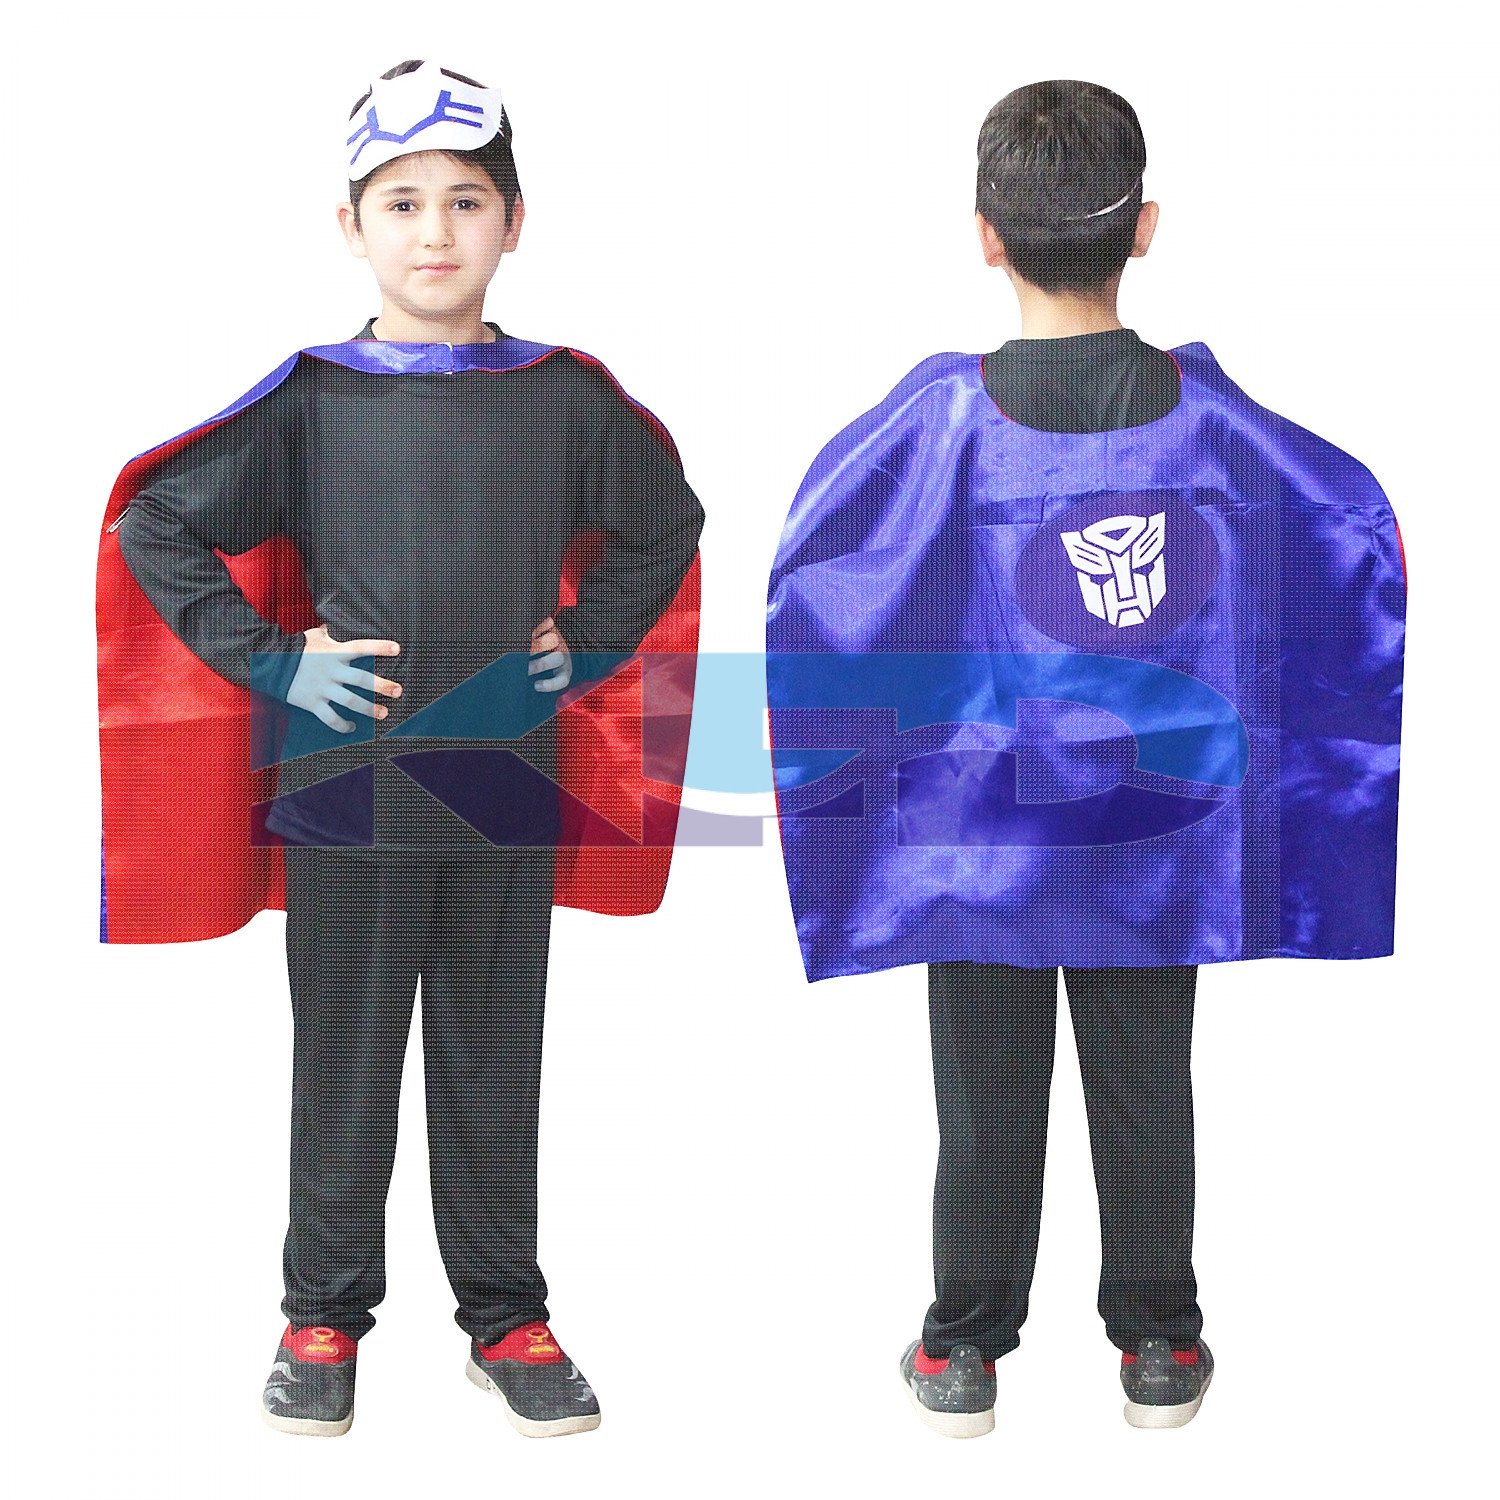 Transformer Robe For Kids/California Costume For kids/Superhero Robe For kids/For Kids Annual function/Theme Party/Competition/Stage Shows/Birthday Party Dress